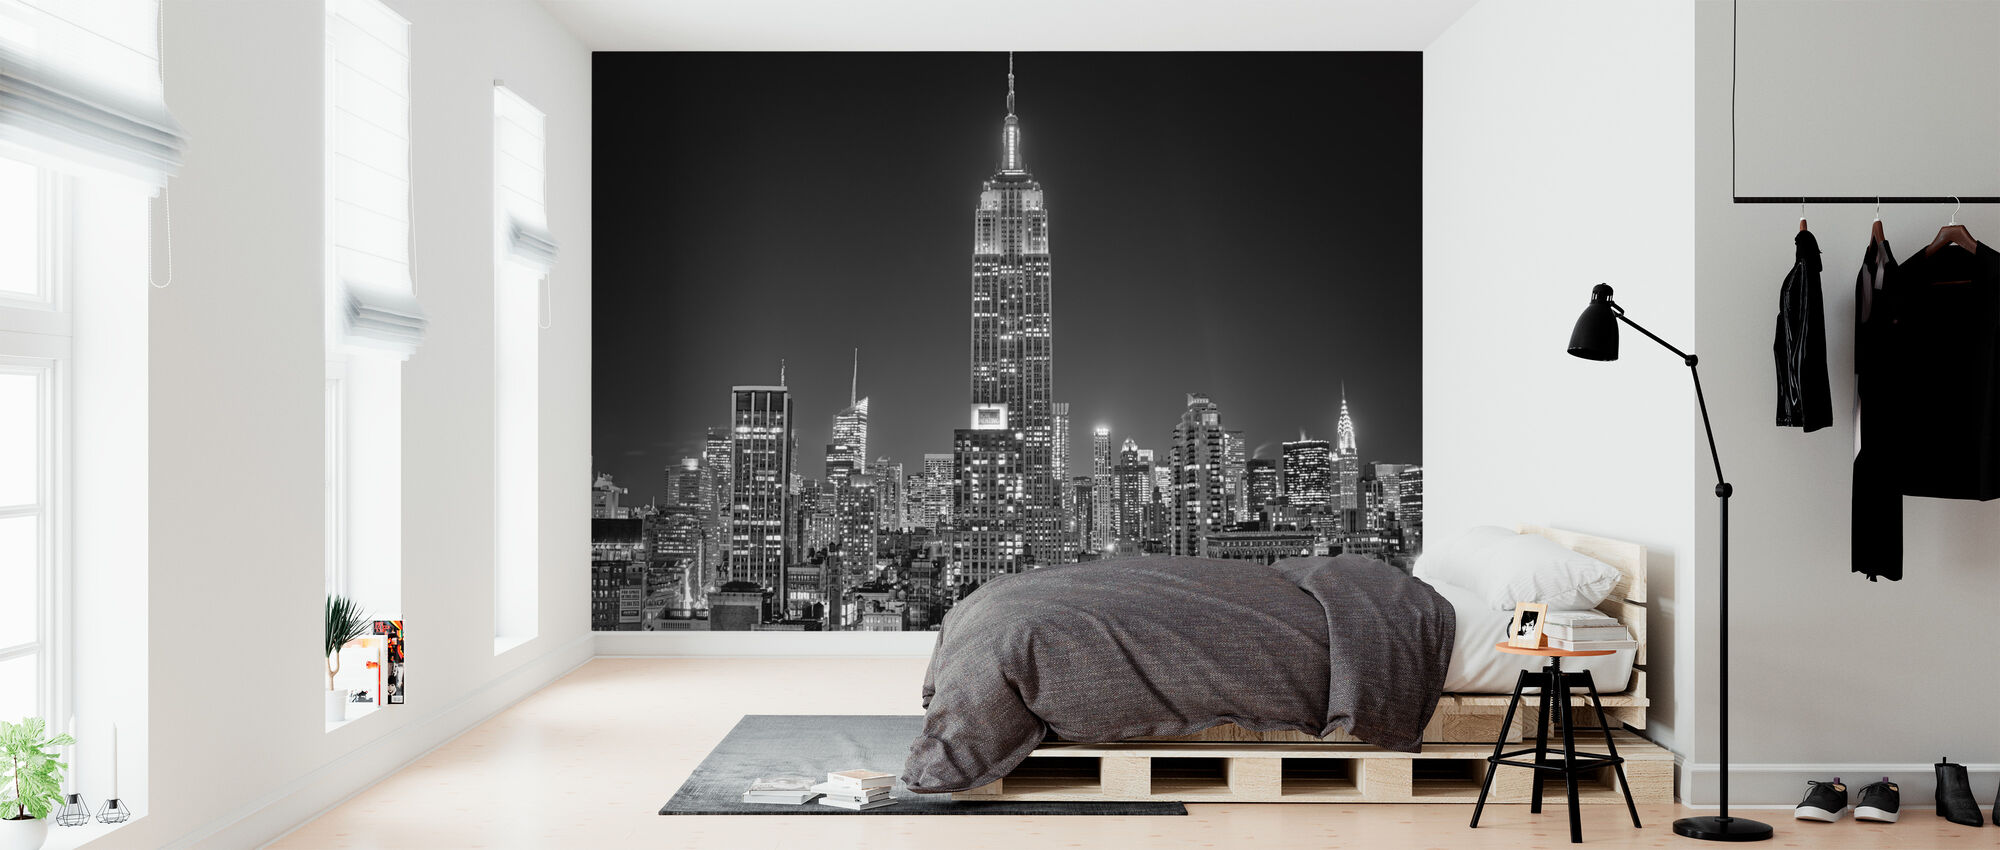 55th Avenue - Wallpaper - Bedroom